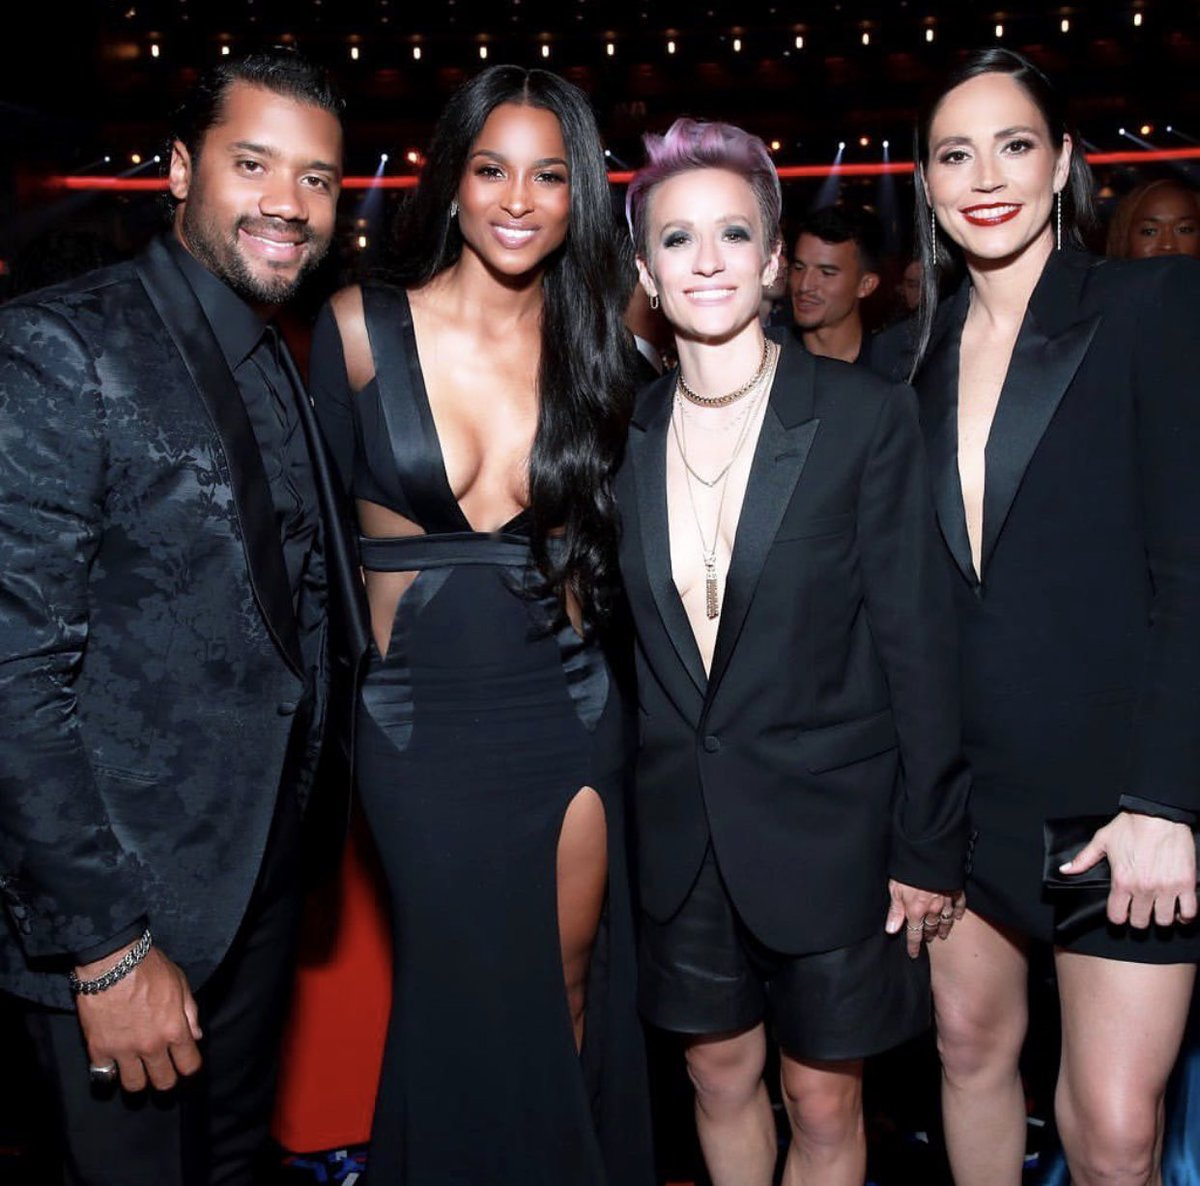 CONGRATULATIONS TO MY BABY @DANGERUSSWILSON ON HOSTING THE @ESPYS WITH THESE BOSS LADIES @MPinoe & @S10Bird💃🏽 https://t.co/SfoH8bwASJ